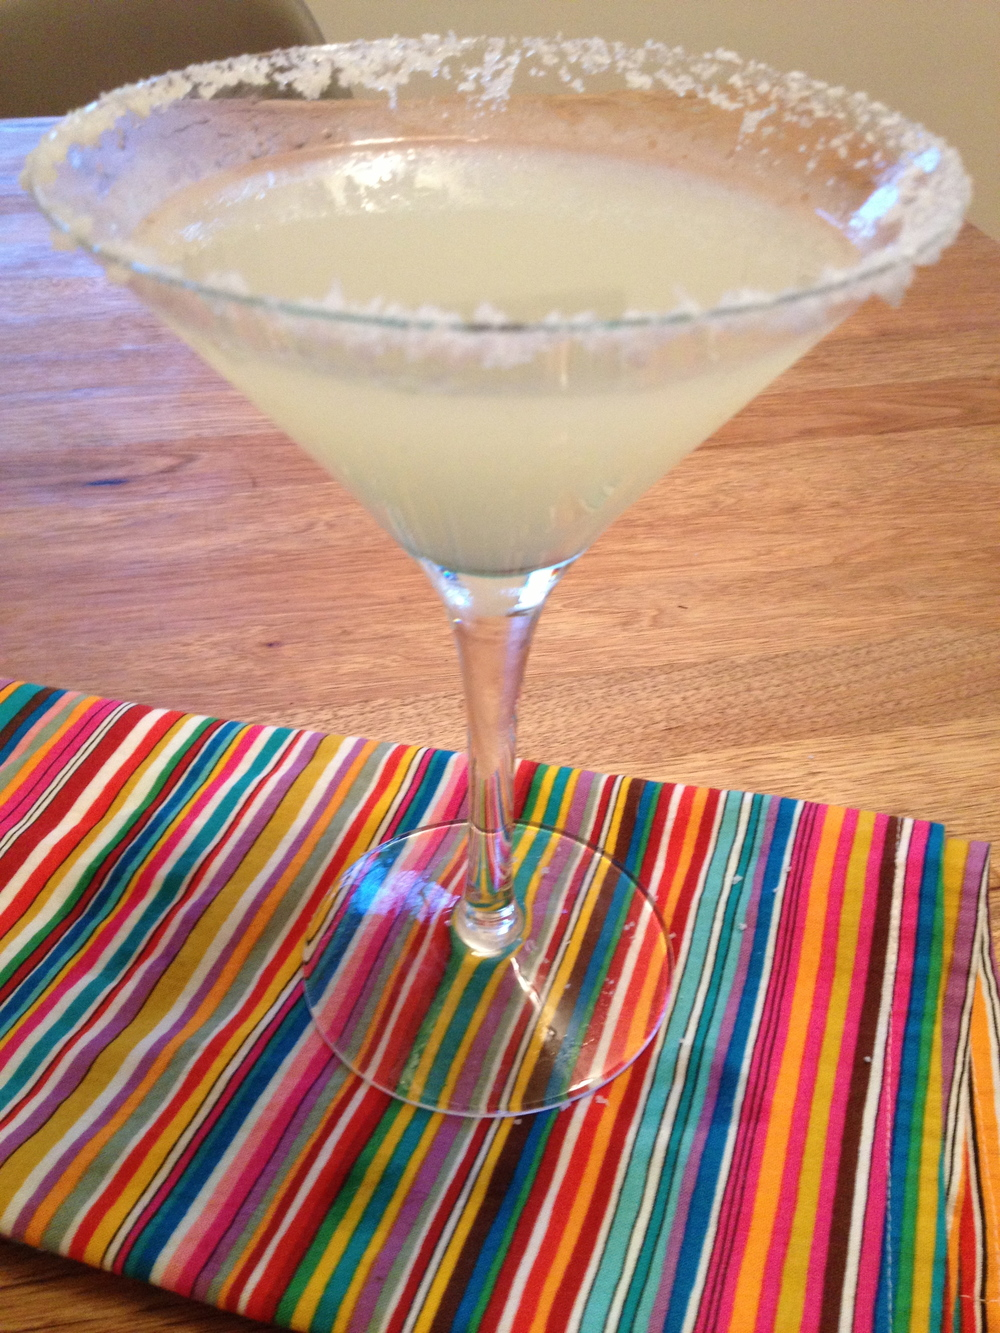 The best home-squeezed margarita ever!